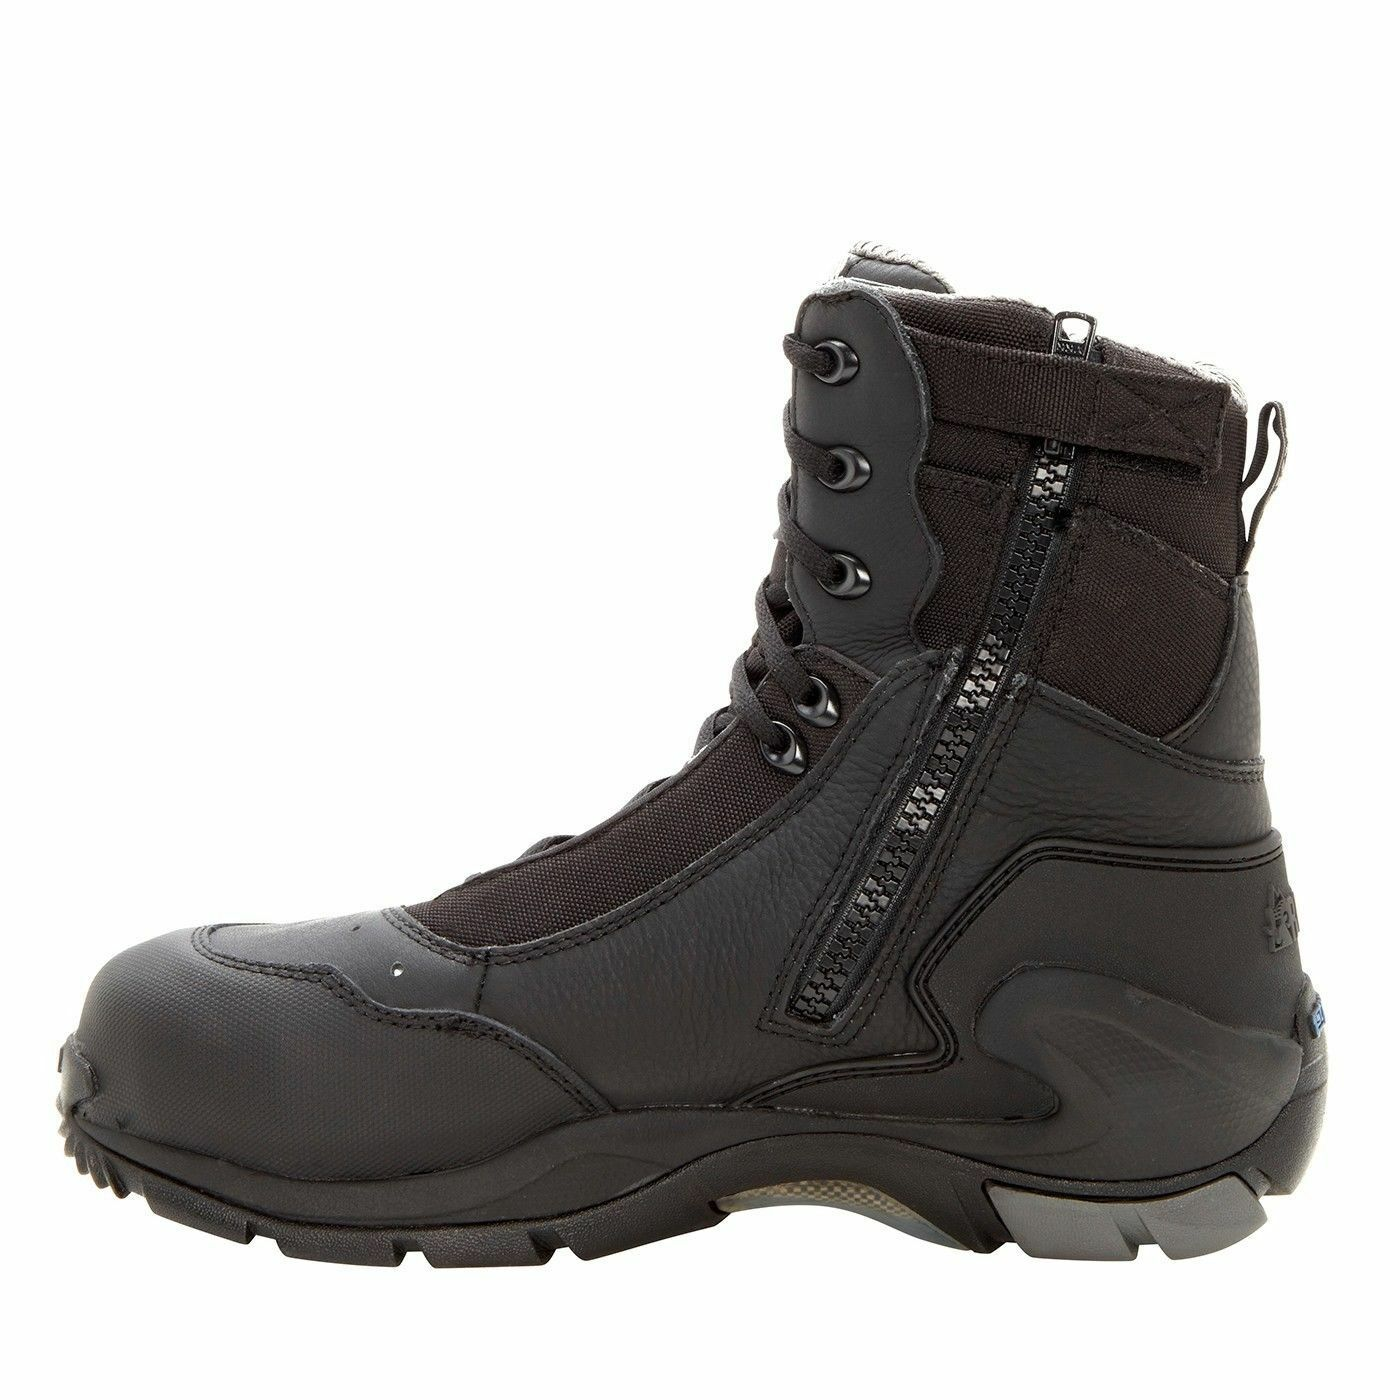 ROCKY 1ST MED FIBER CARBON FIBER MED TOE PR WATERPROOF ZIPPER BOOTS 911113 * ALL SIZES 59aa43